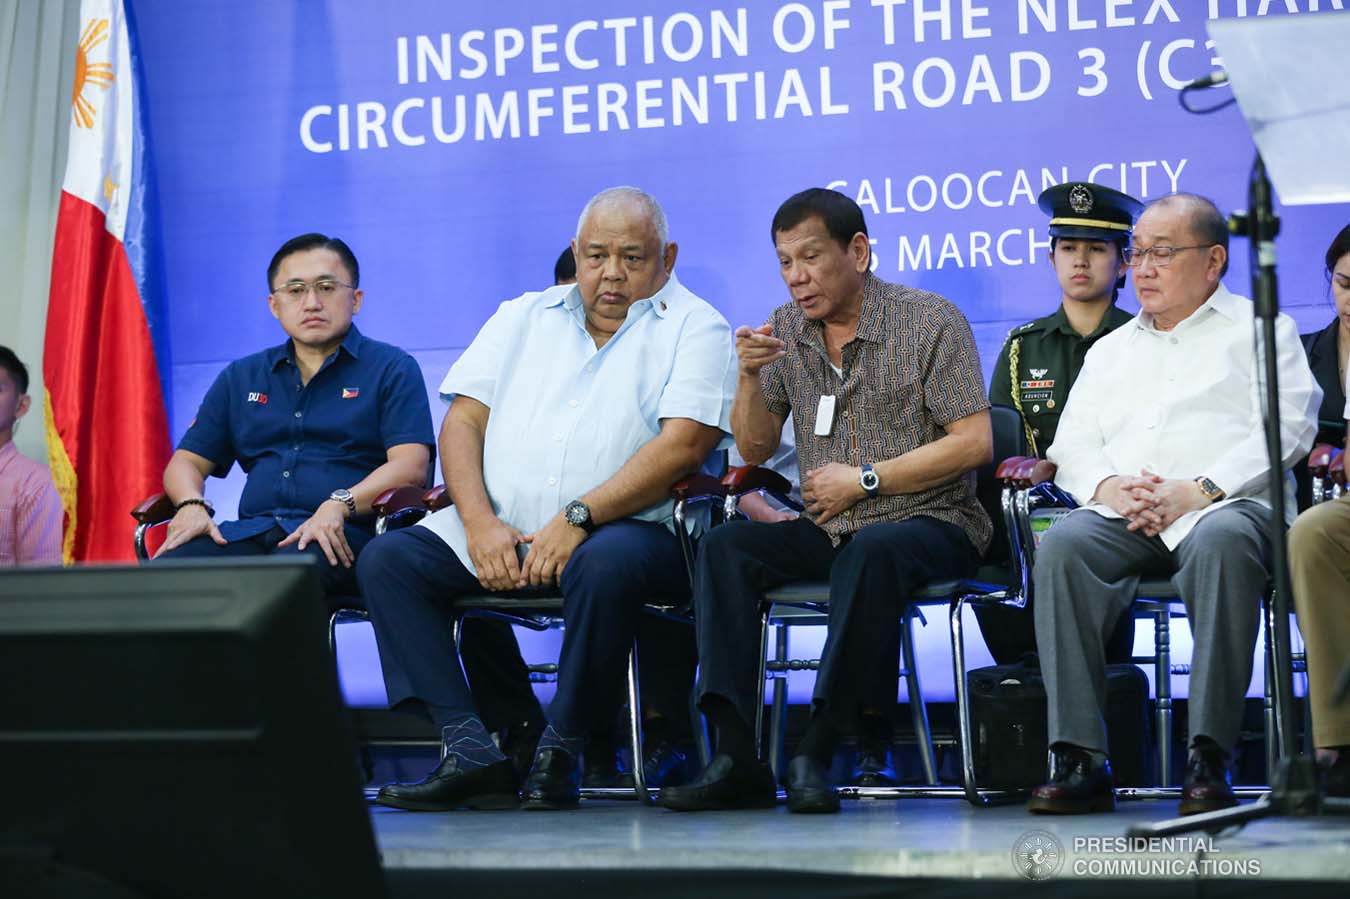 President Rodrigo Roa Duterte chats with Executive Secretary Salvador Medialdea after leading the inspection of the North Luzon Expressway (NLEX) Harbor Link Circumferential Road 3 (C3)-R10 Section in Caloocan City on March 5, 2020. SIMEON CELI JR./PRESIDENTIAL PHOTO